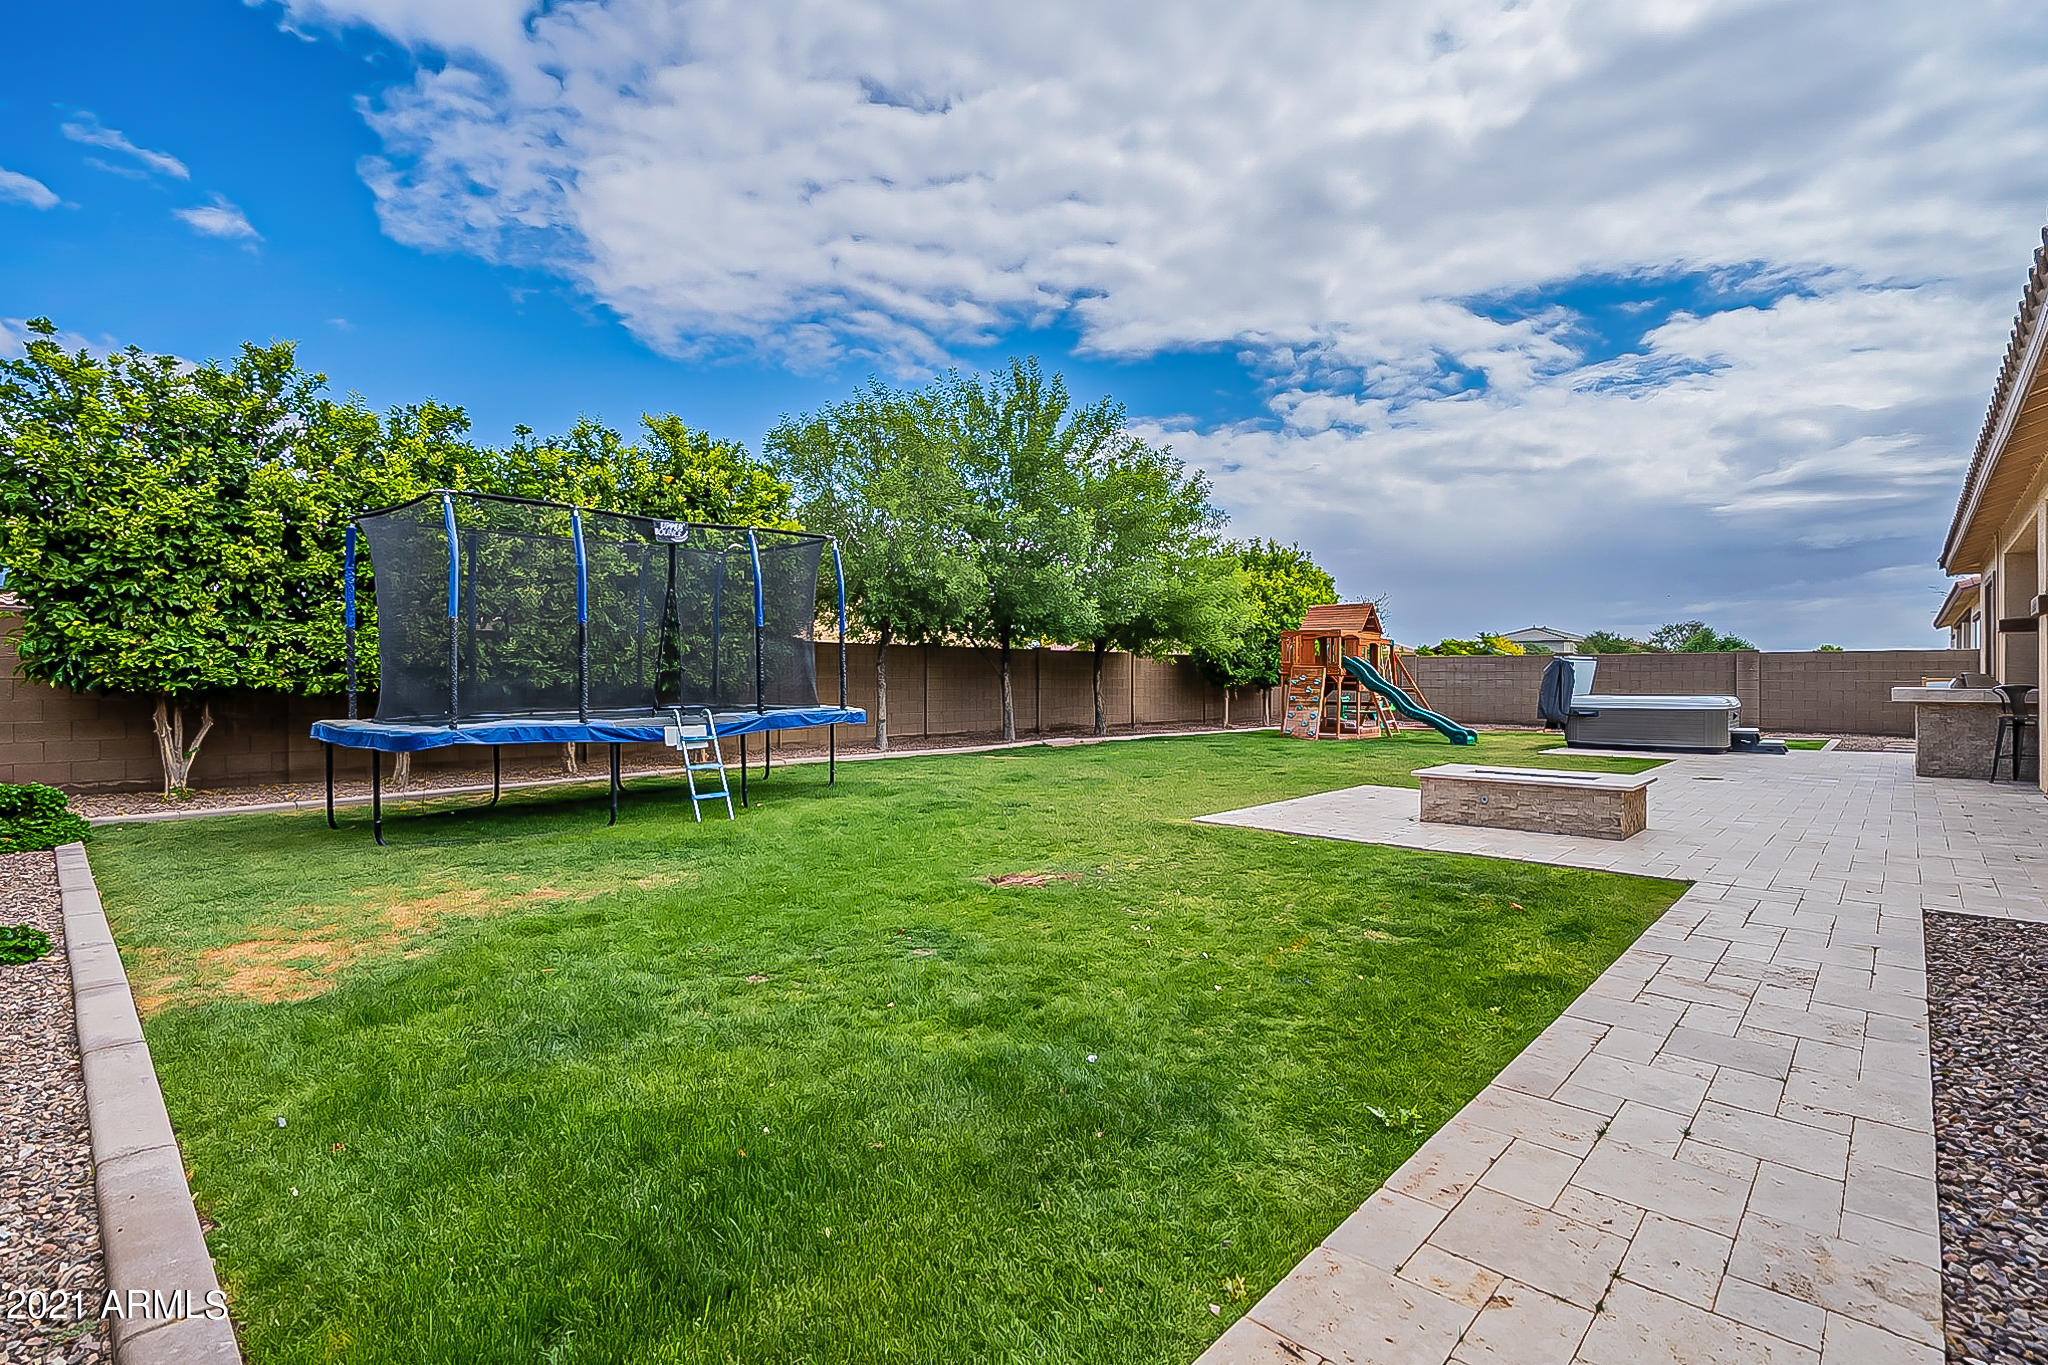 21262 VIA DE ARBOLES --, Queen Creek, Arizona 85142, 4 Bedrooms Bedrooms, ,3 BathroomsBathrooms,Residential,For Sale,VIA DE ARBOLES,6228116